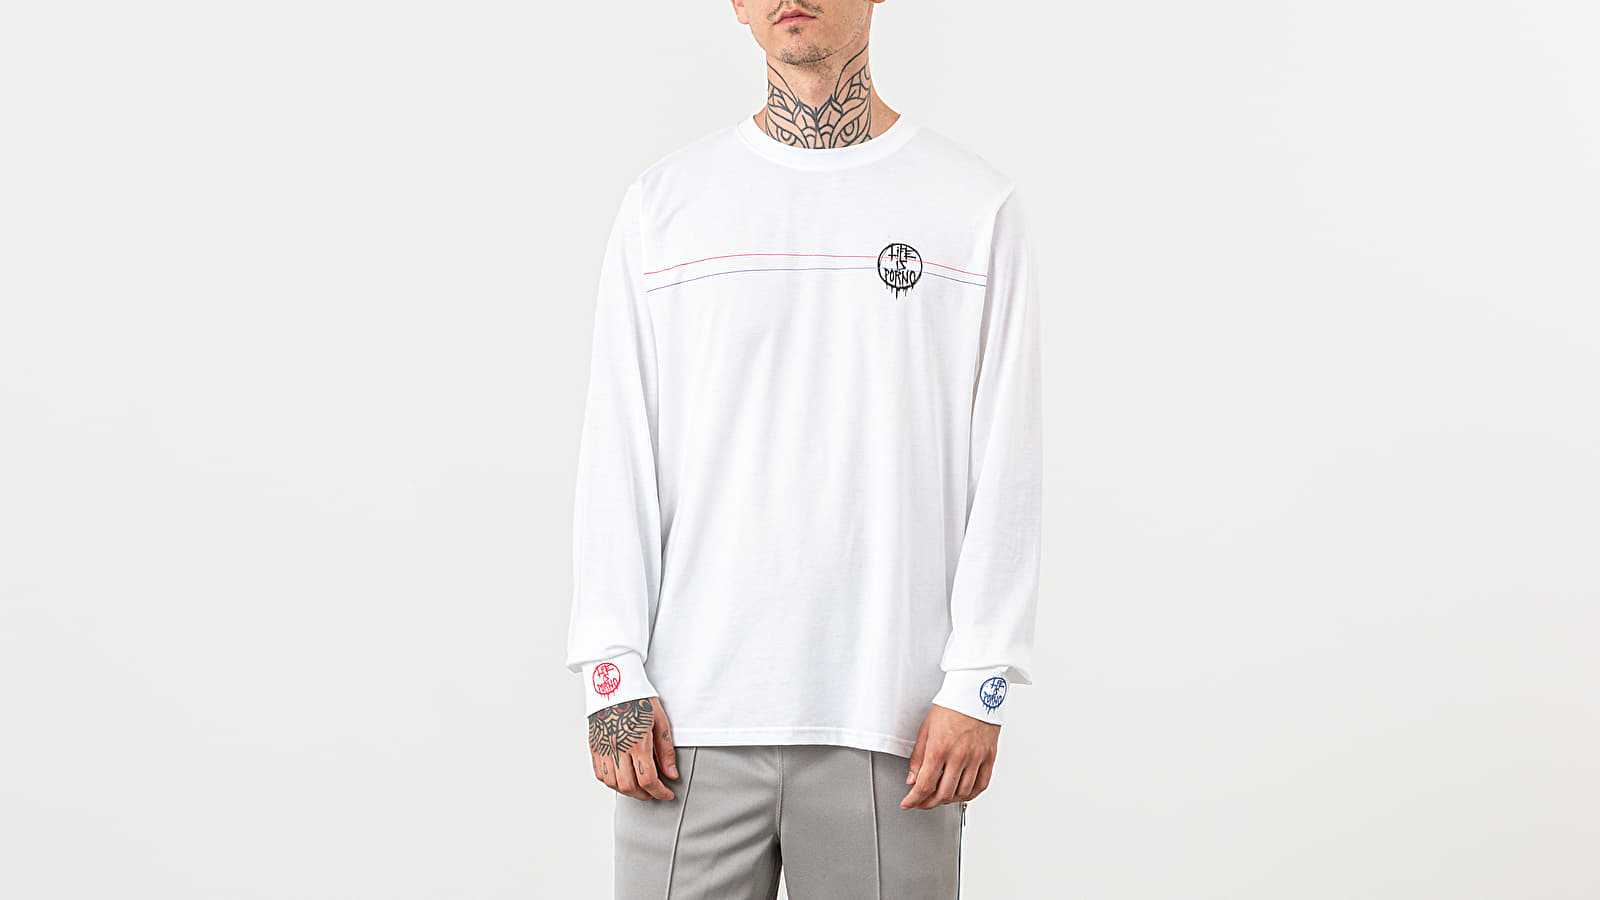 Life Is Porno VBVP Long Sleeve Tee